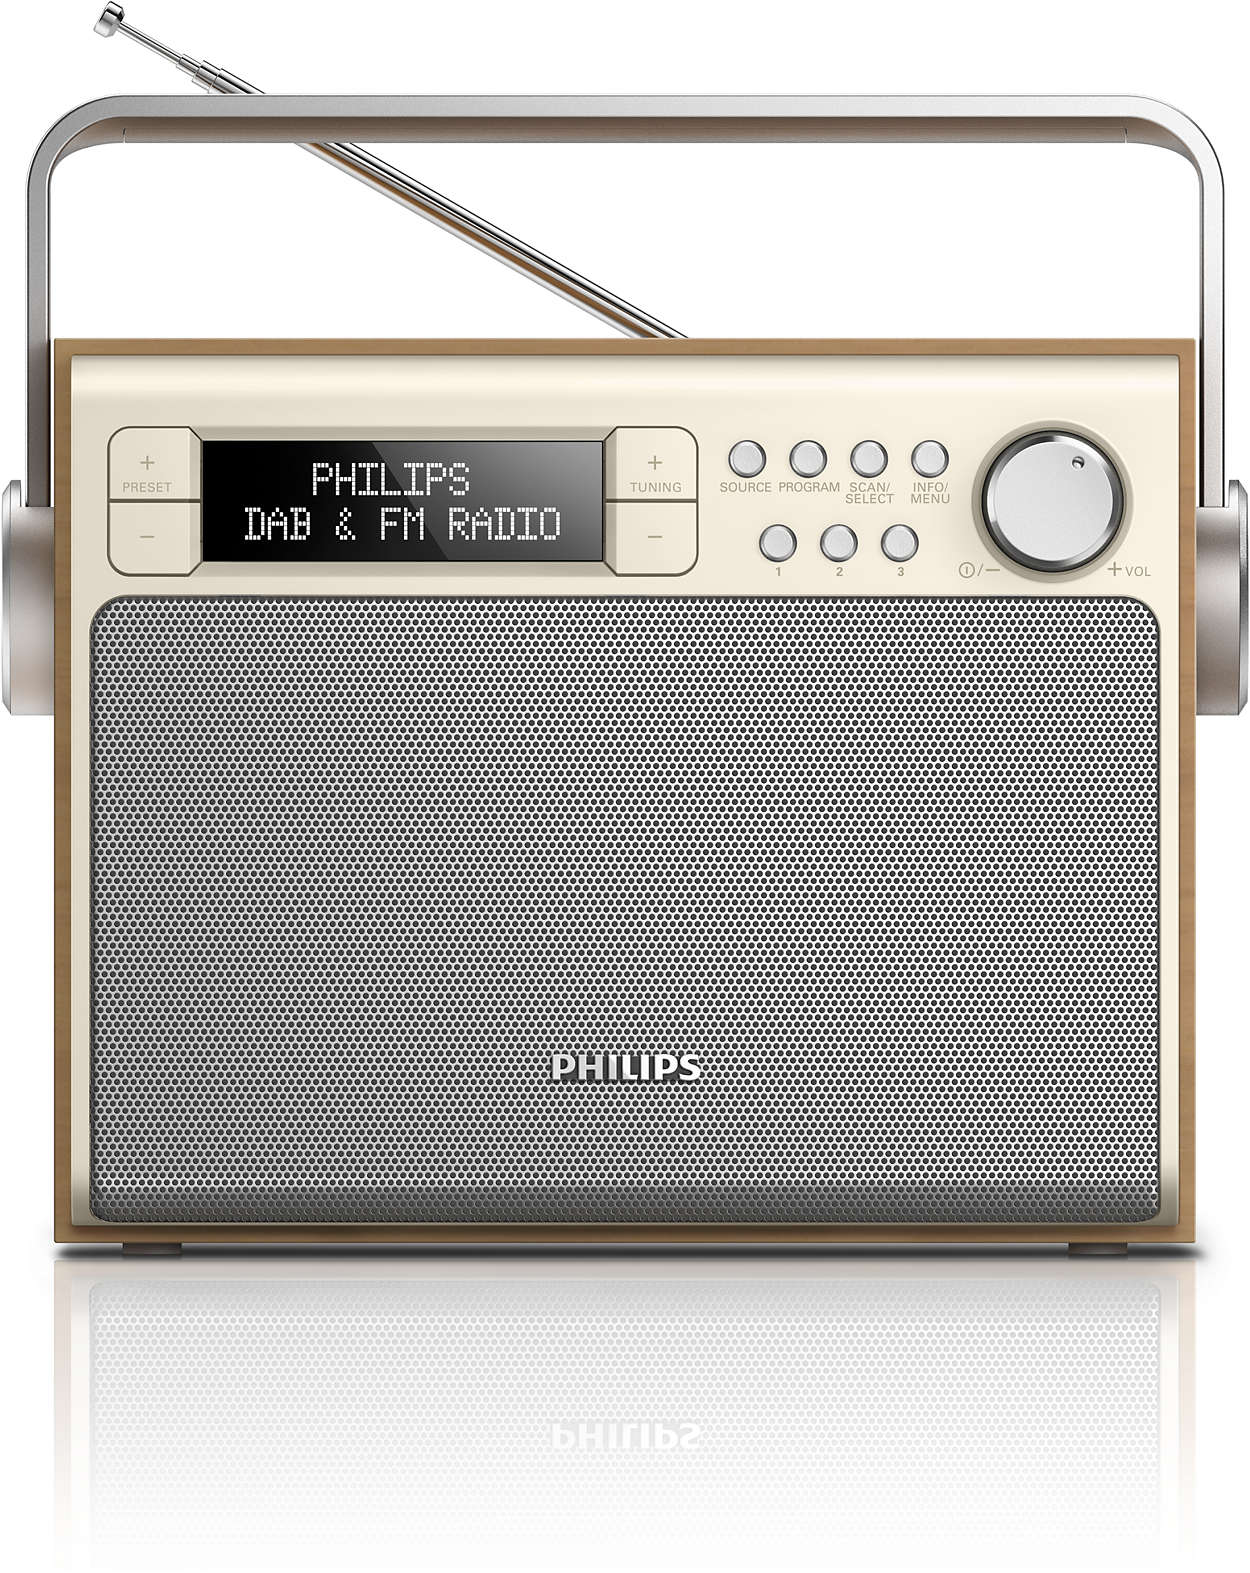 radio portable ae5020 12 philips. Black Bedroom Furniture Sets. Home Design Ideas